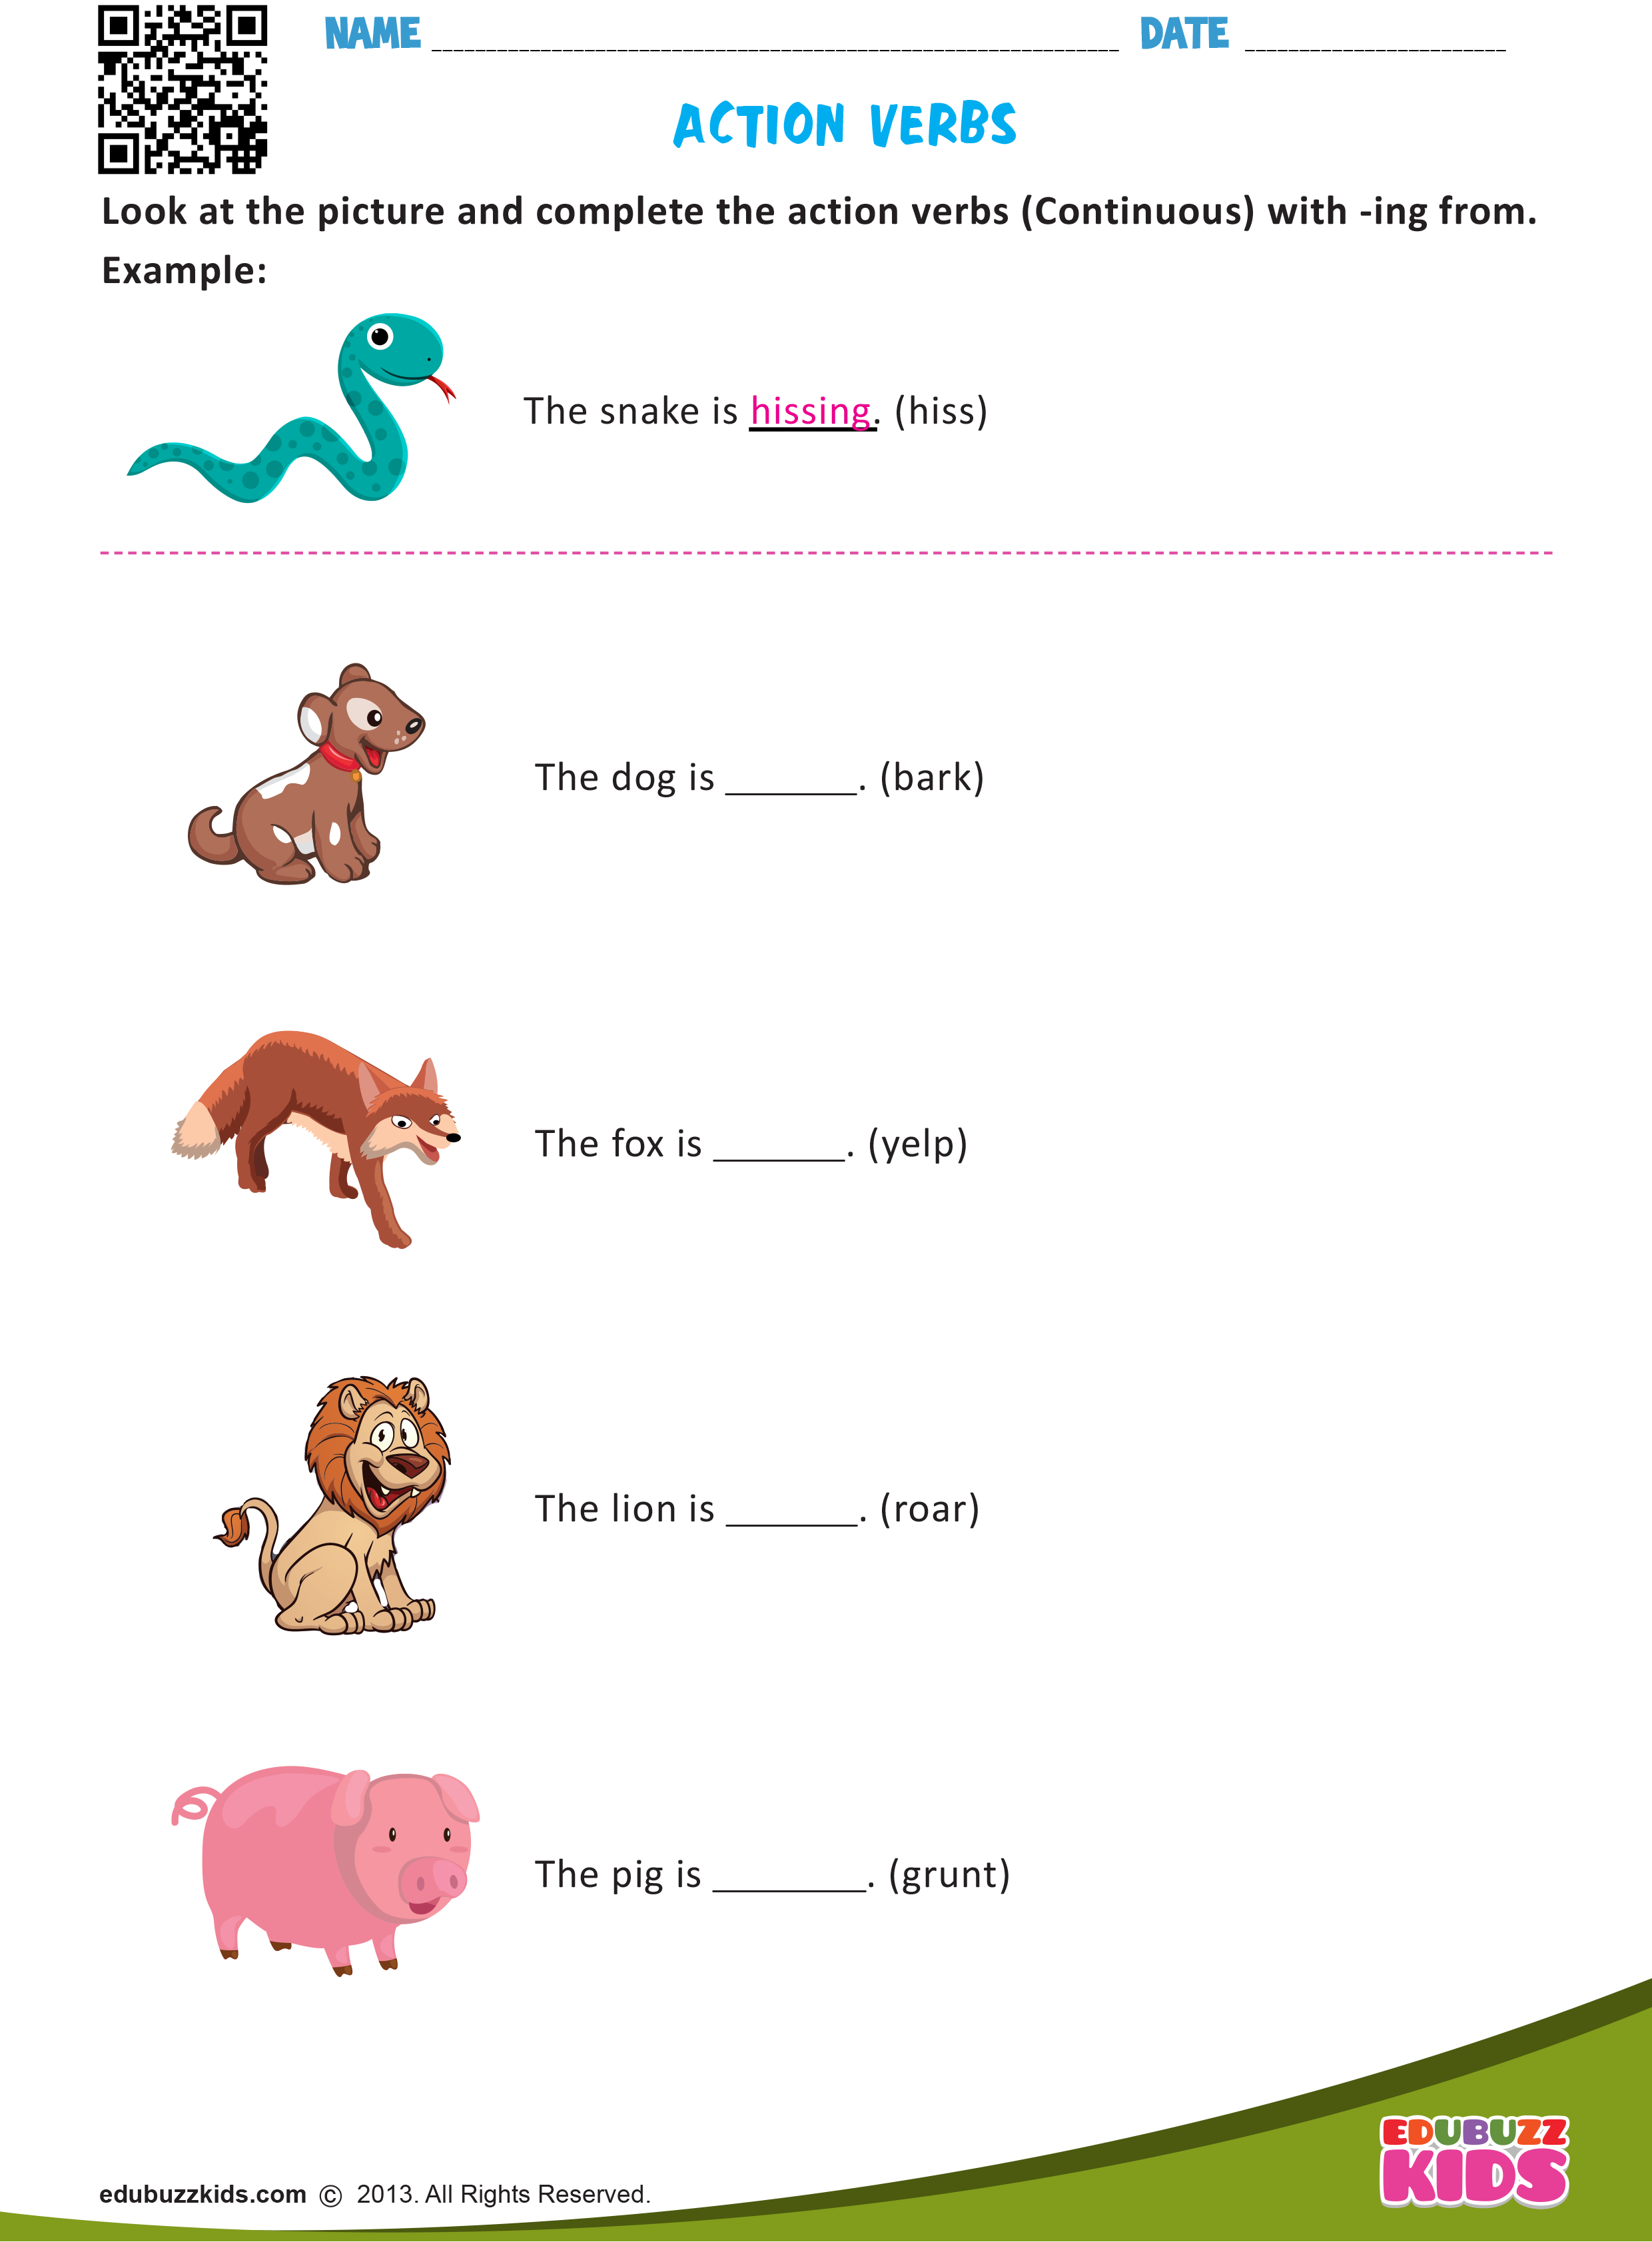 English Action Verbs Worksheets For Grade1 With Free